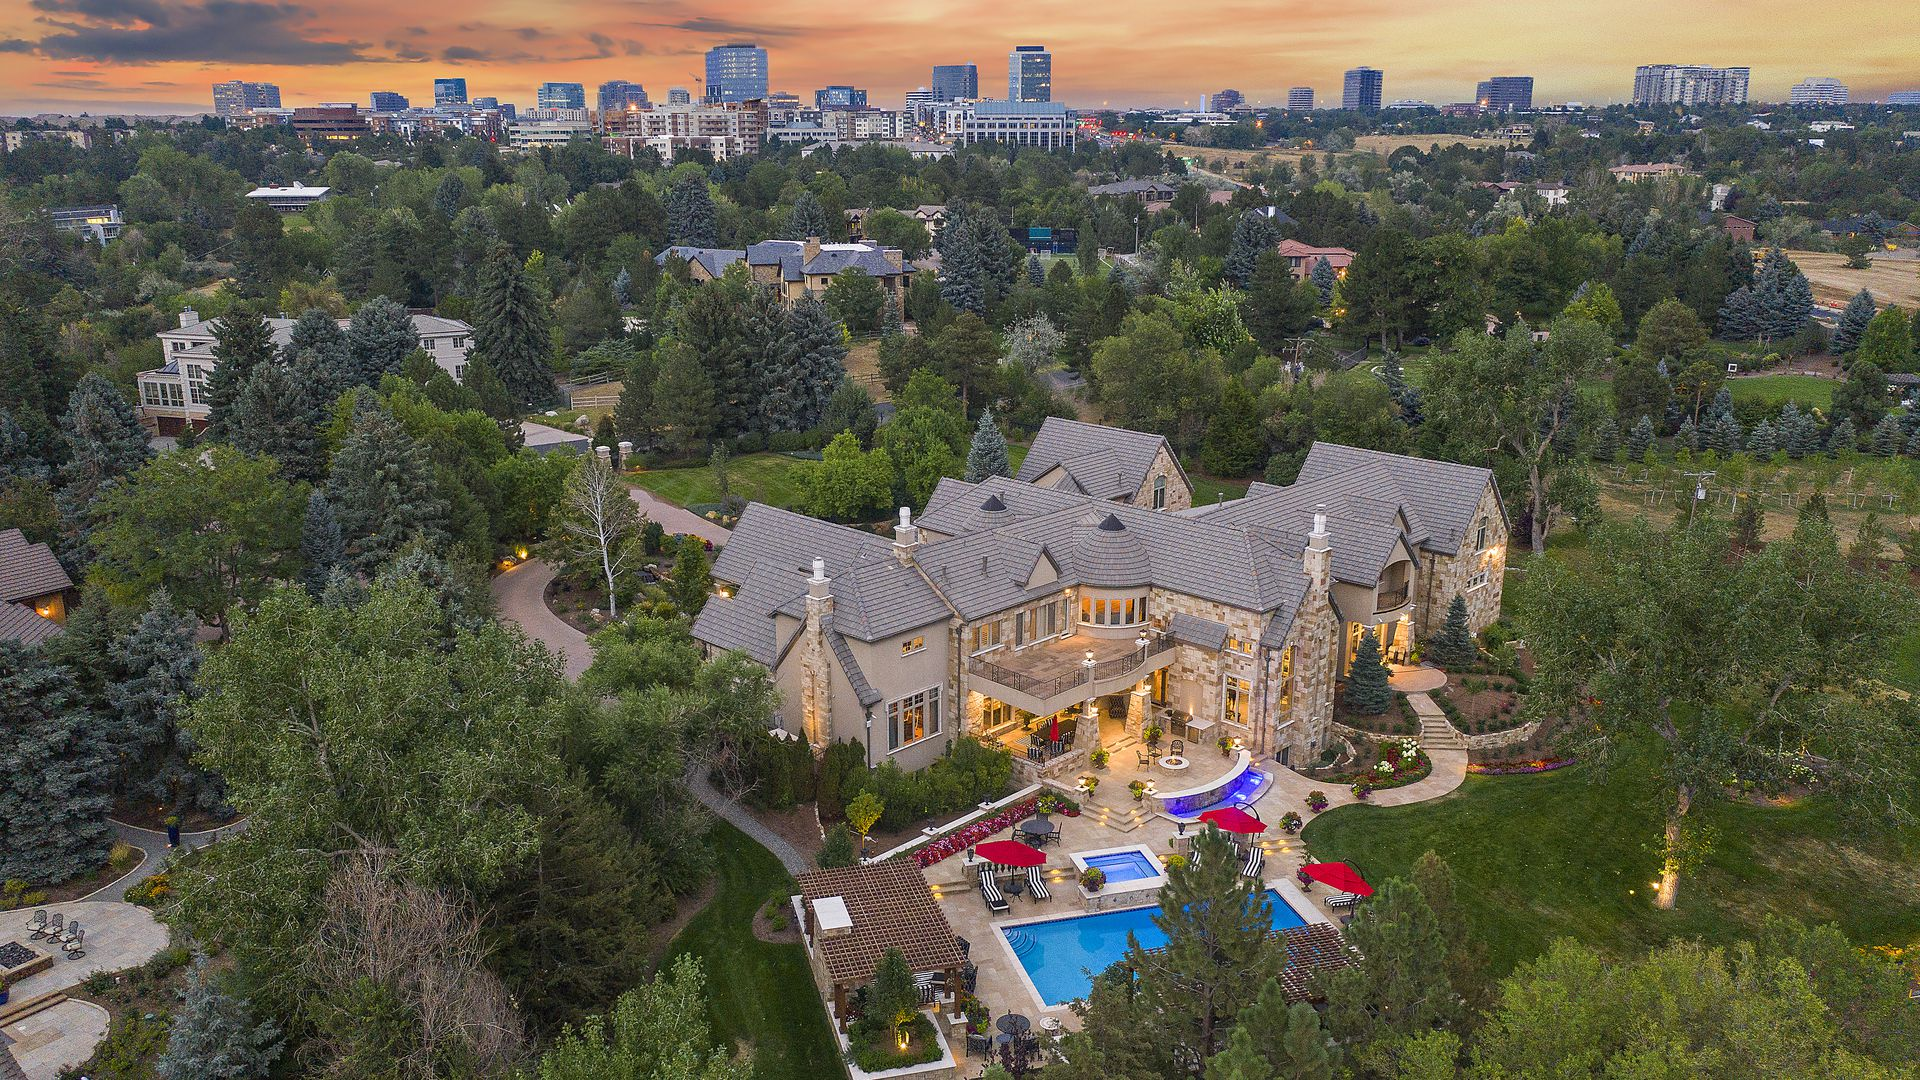 An aerial view of 5800 Piedmont Drive in Cherry Hills Village. Photo courtesy of Josh Drovdal